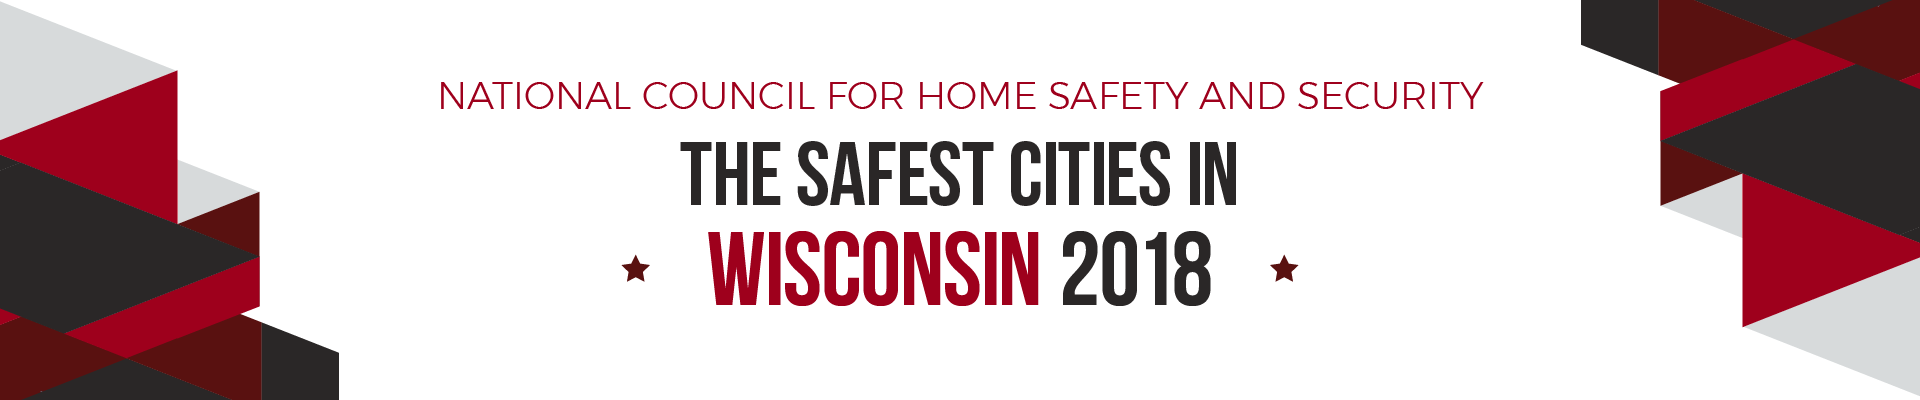 wisconsin safe cities 2018